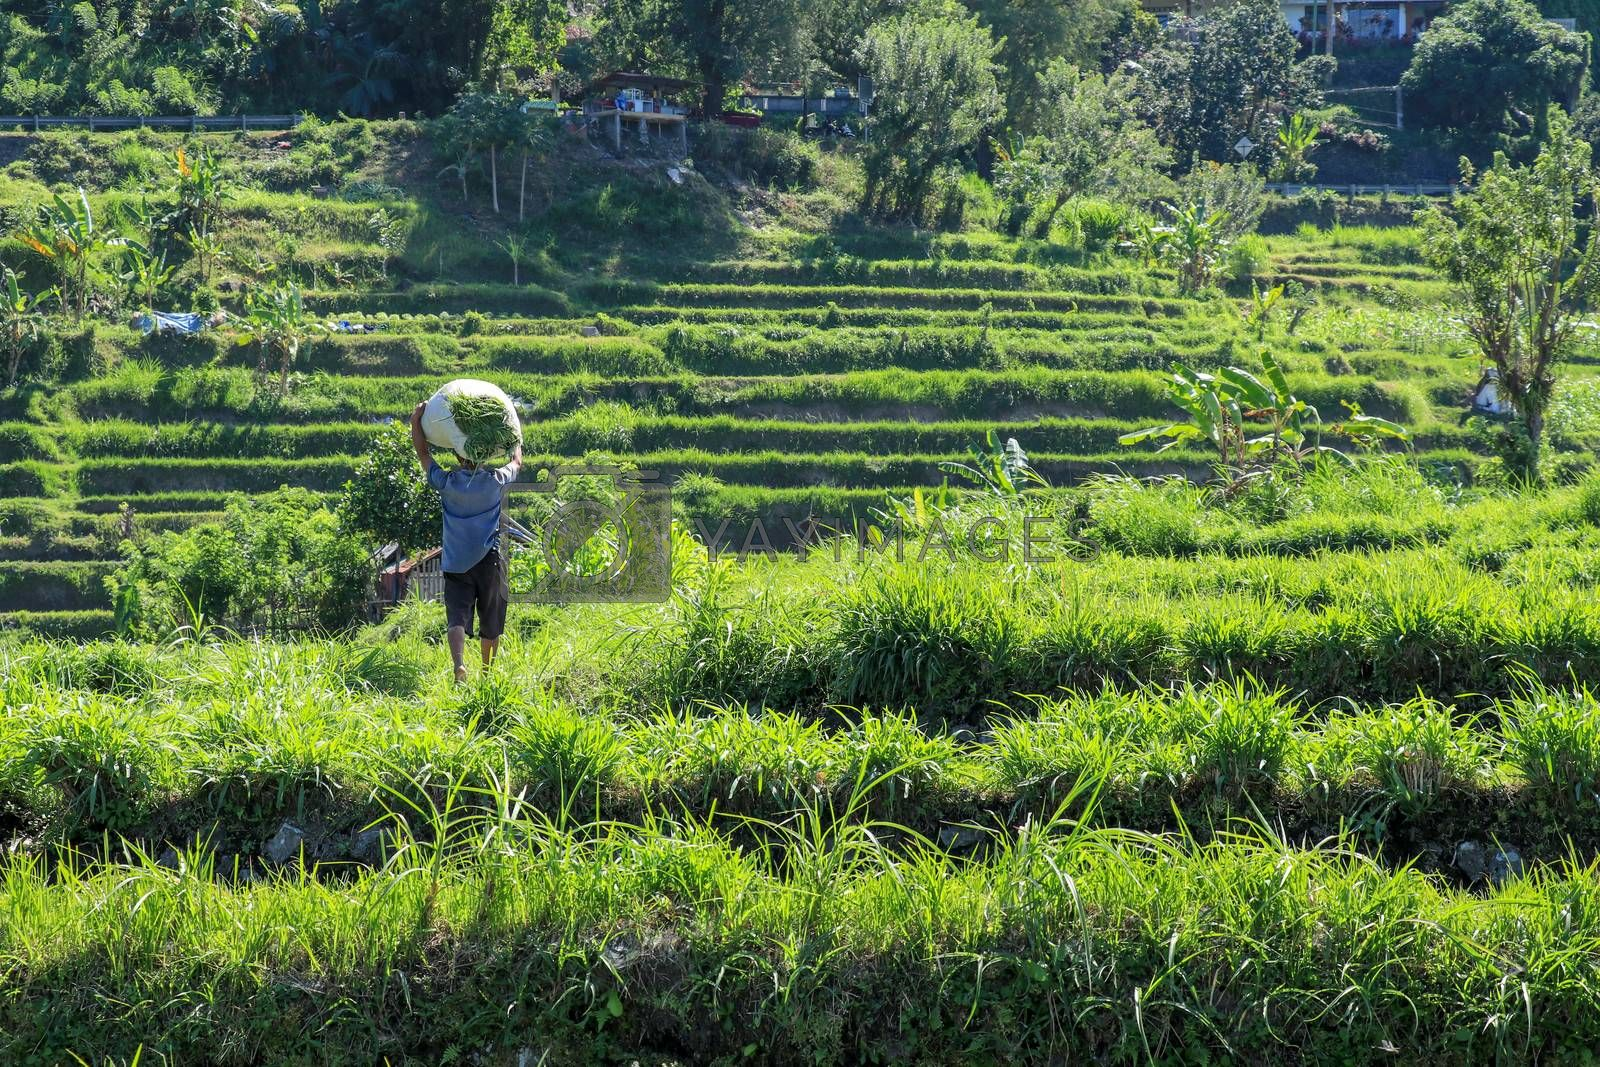 Bali, Indonesia - December 2019: Balinese man with a naked torso carries a stack of grass on his head. The hard life of the poor people of Bali. Hard-working Bali local people.